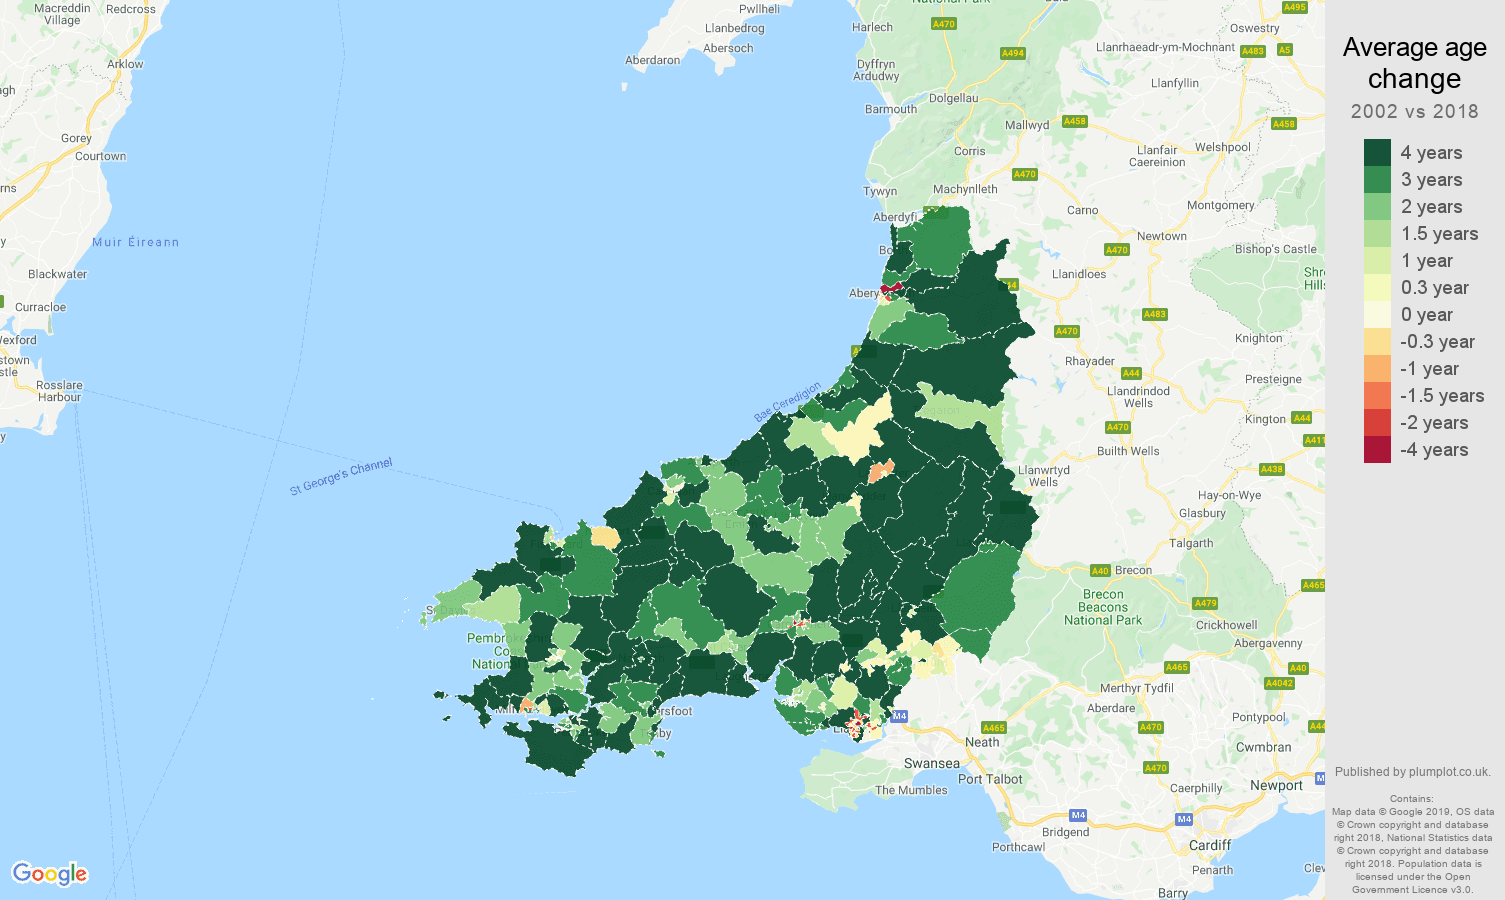 Dyfed average age change map